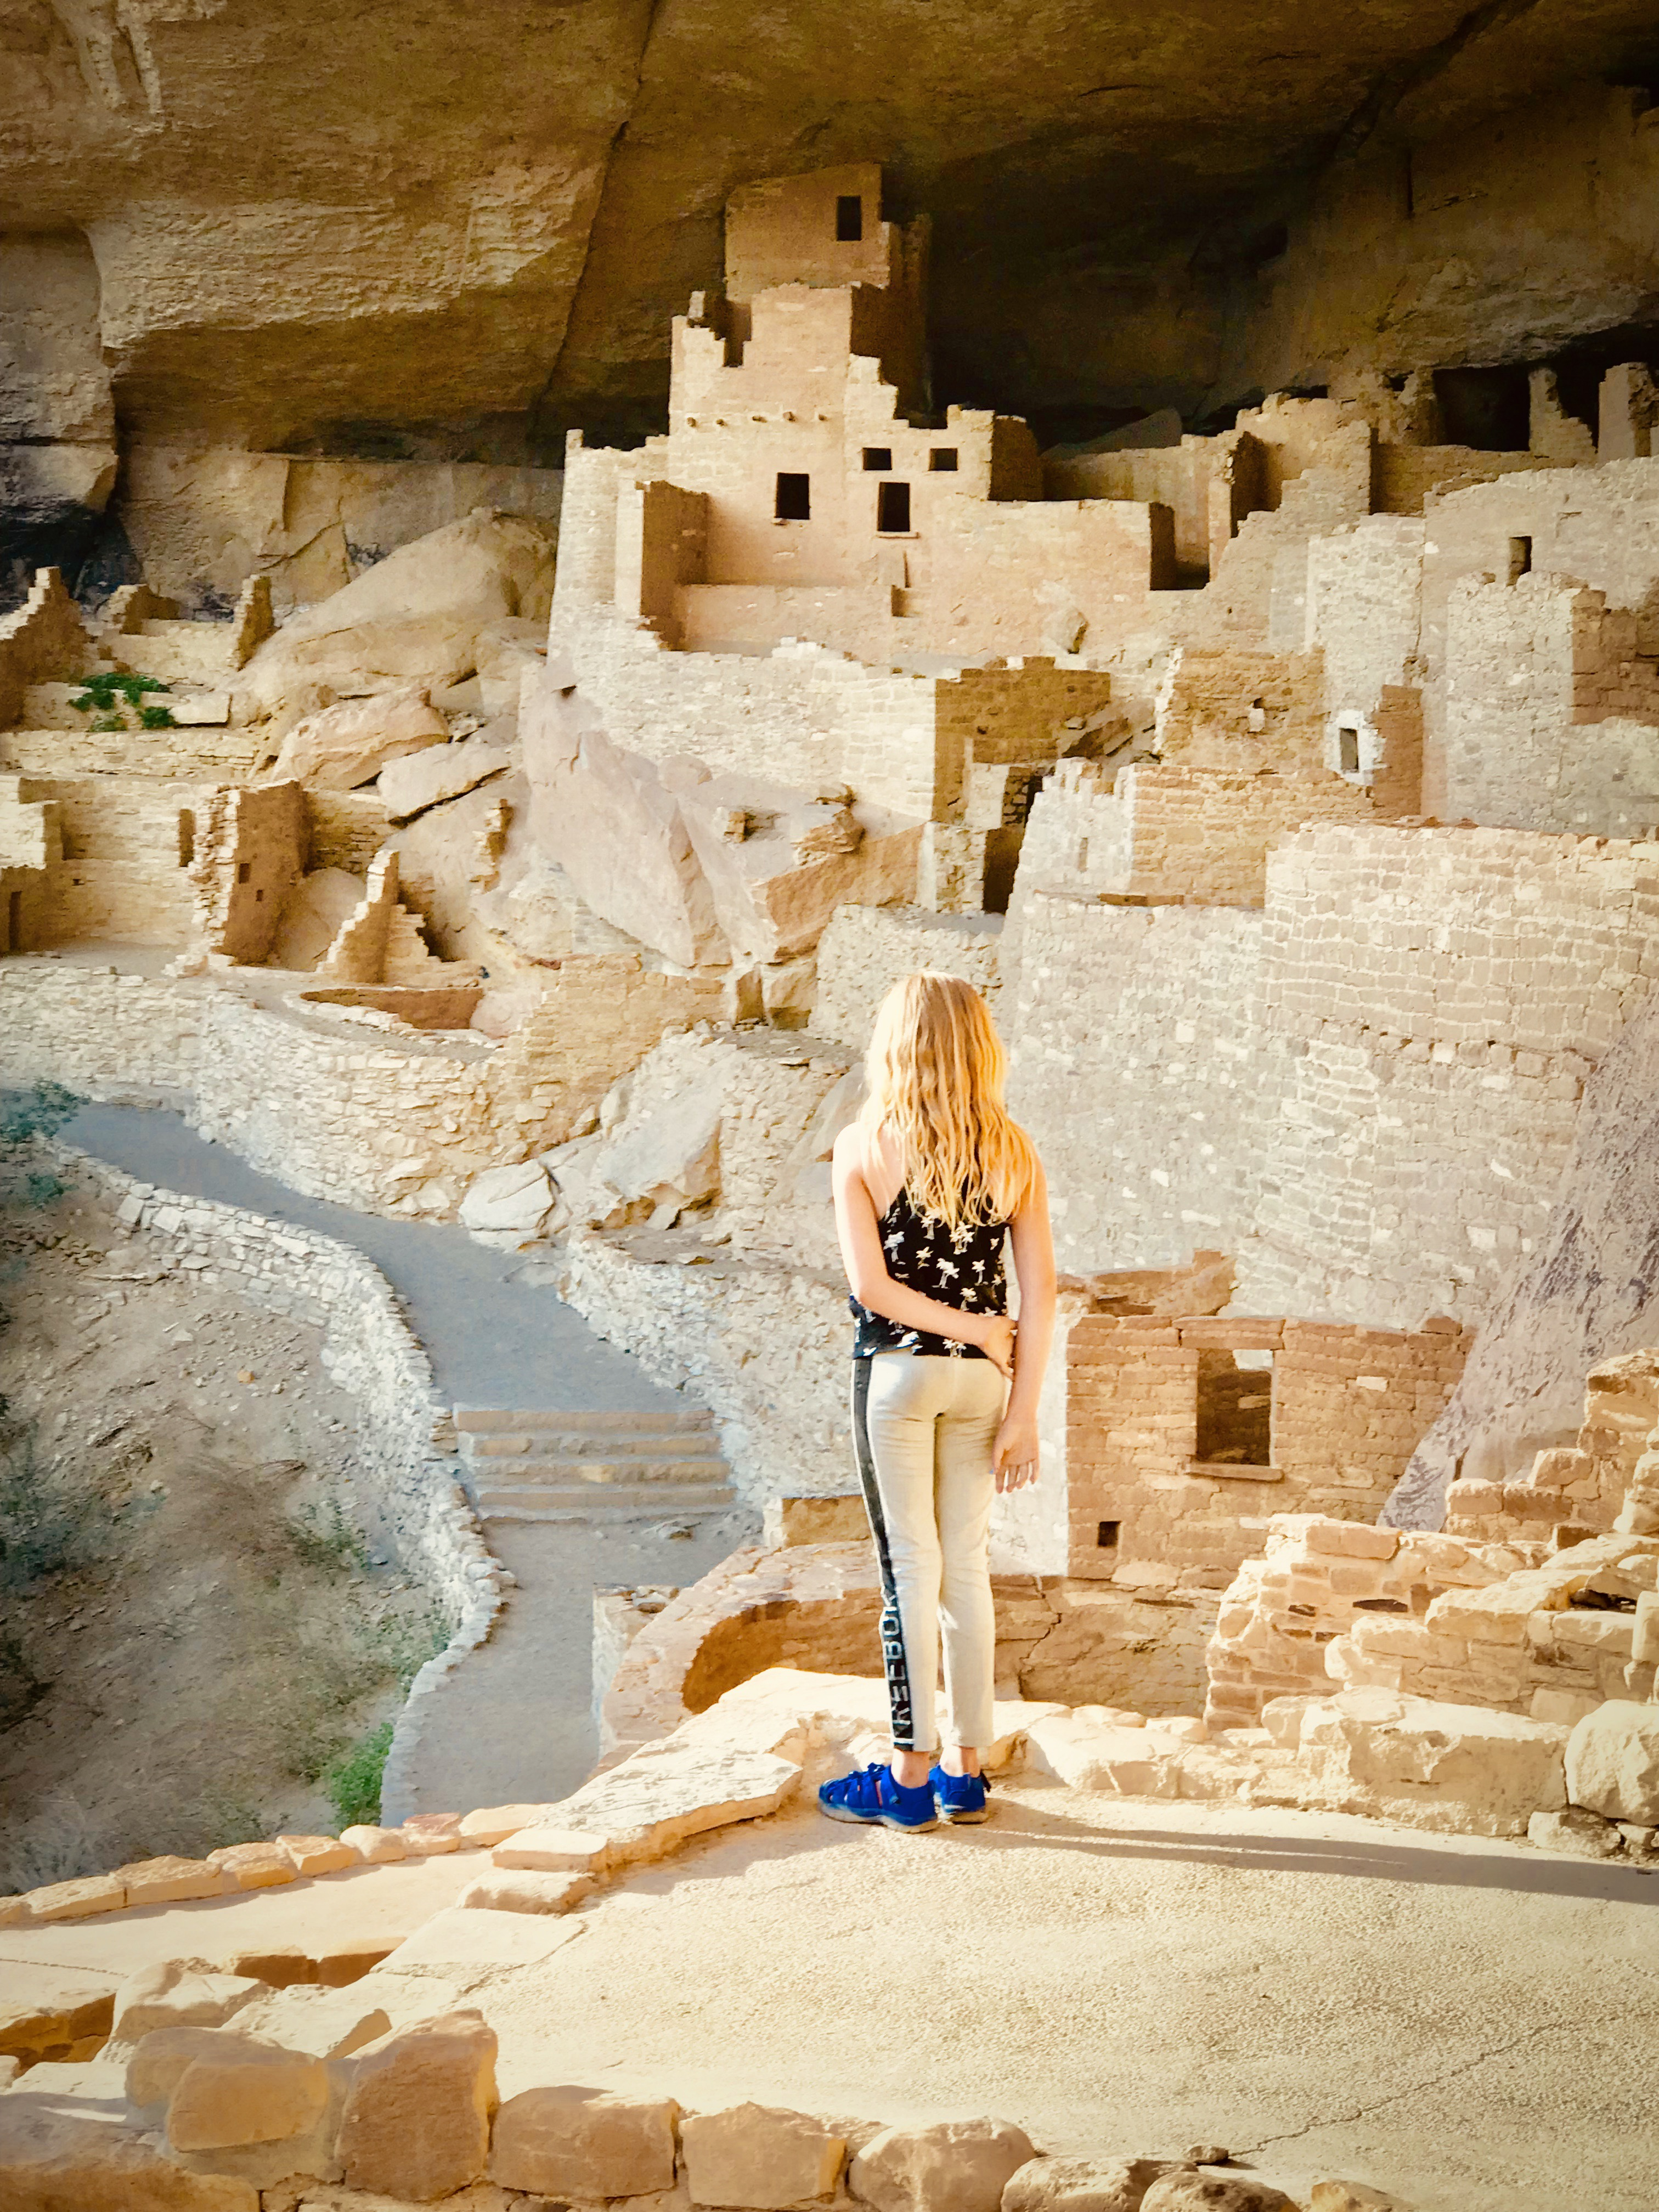 cb6da72bc6 Dwell on This: As mysterious as it is fascinating, Mesa Verde National Park  (a UNESCO World Heritage Site) in southwestern Colorado is home to nearly  5,000 ...